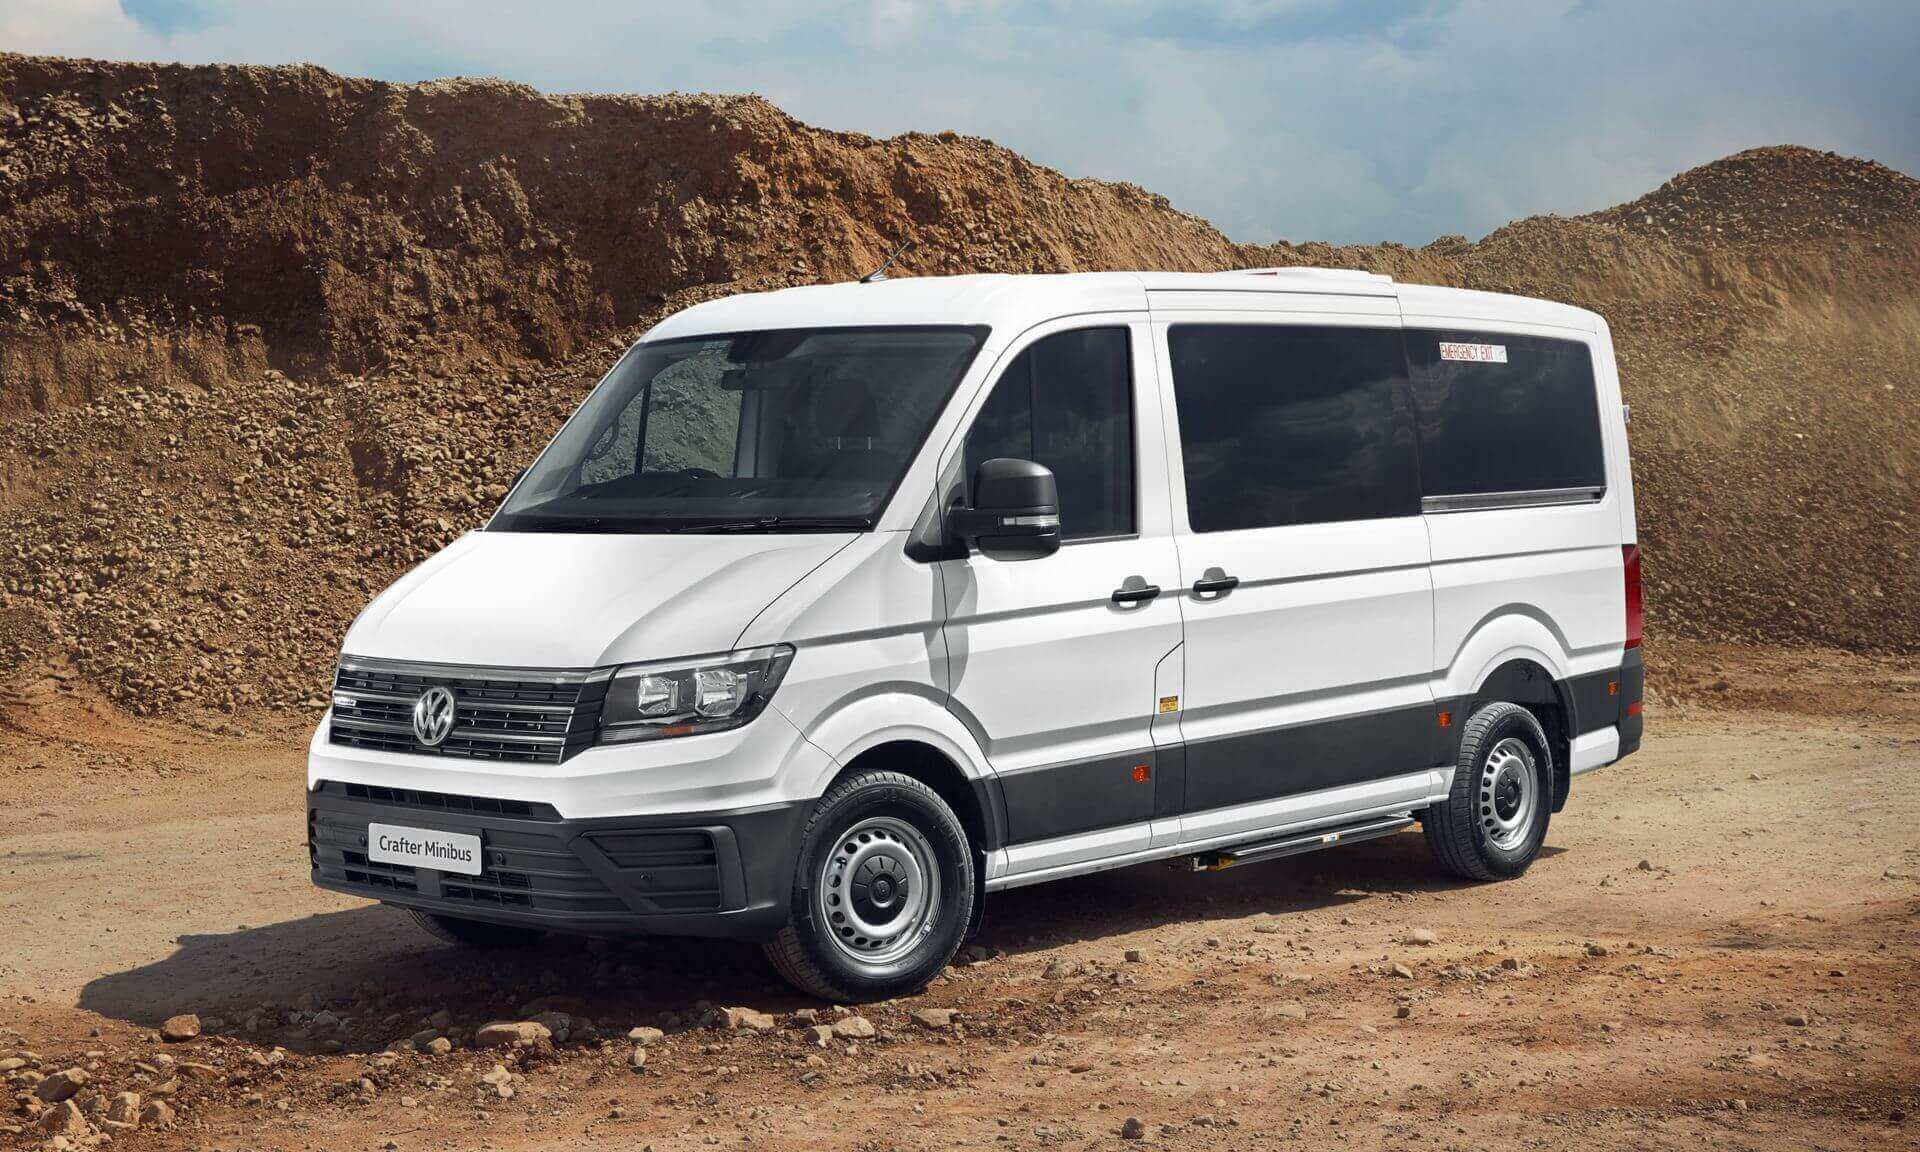 Crafter Minibus Gallery Image 3